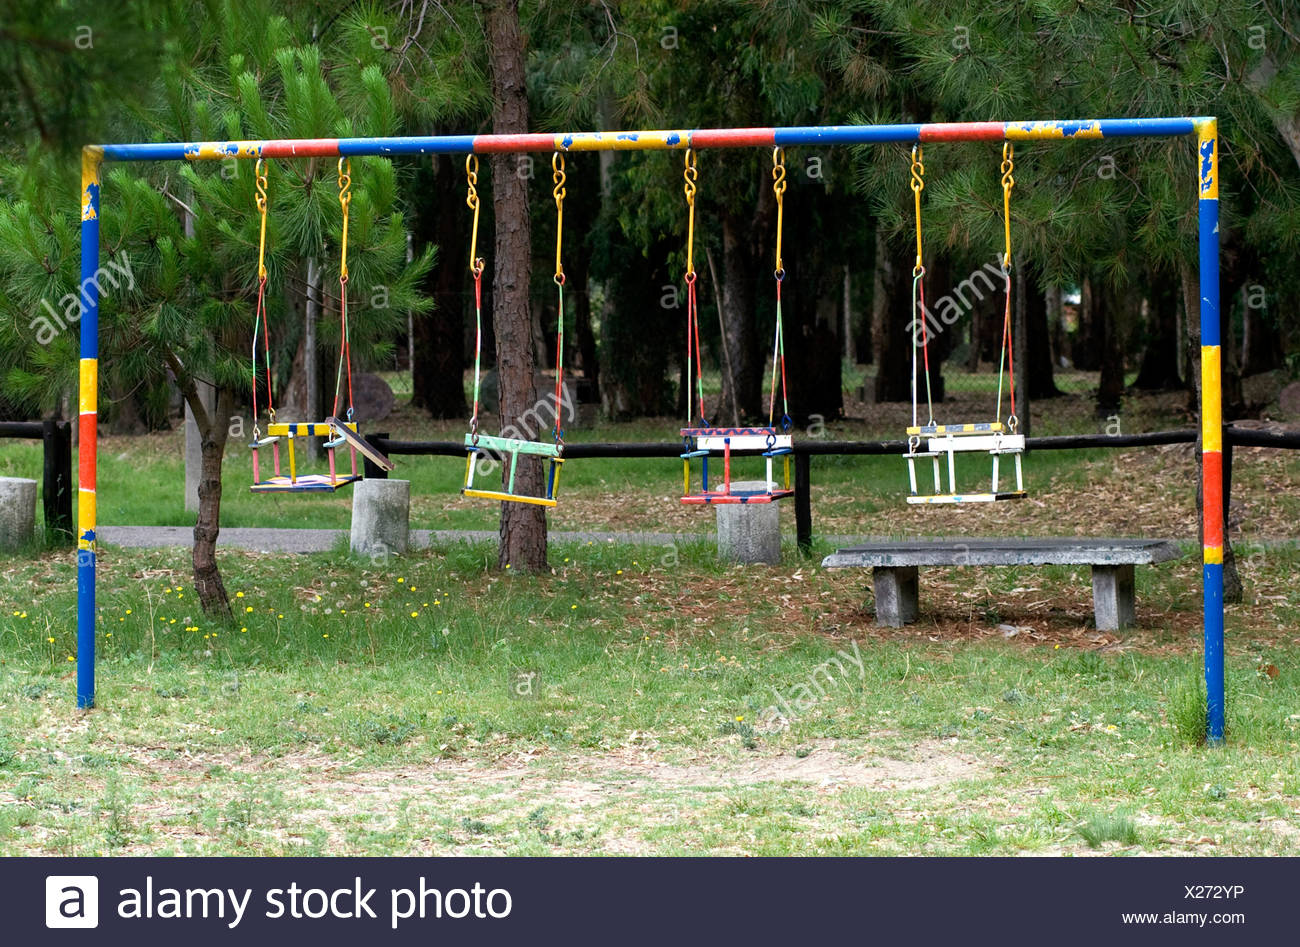 children's' swings in a playground,Uruguay  -  ©Marty Heitner Stock Photo